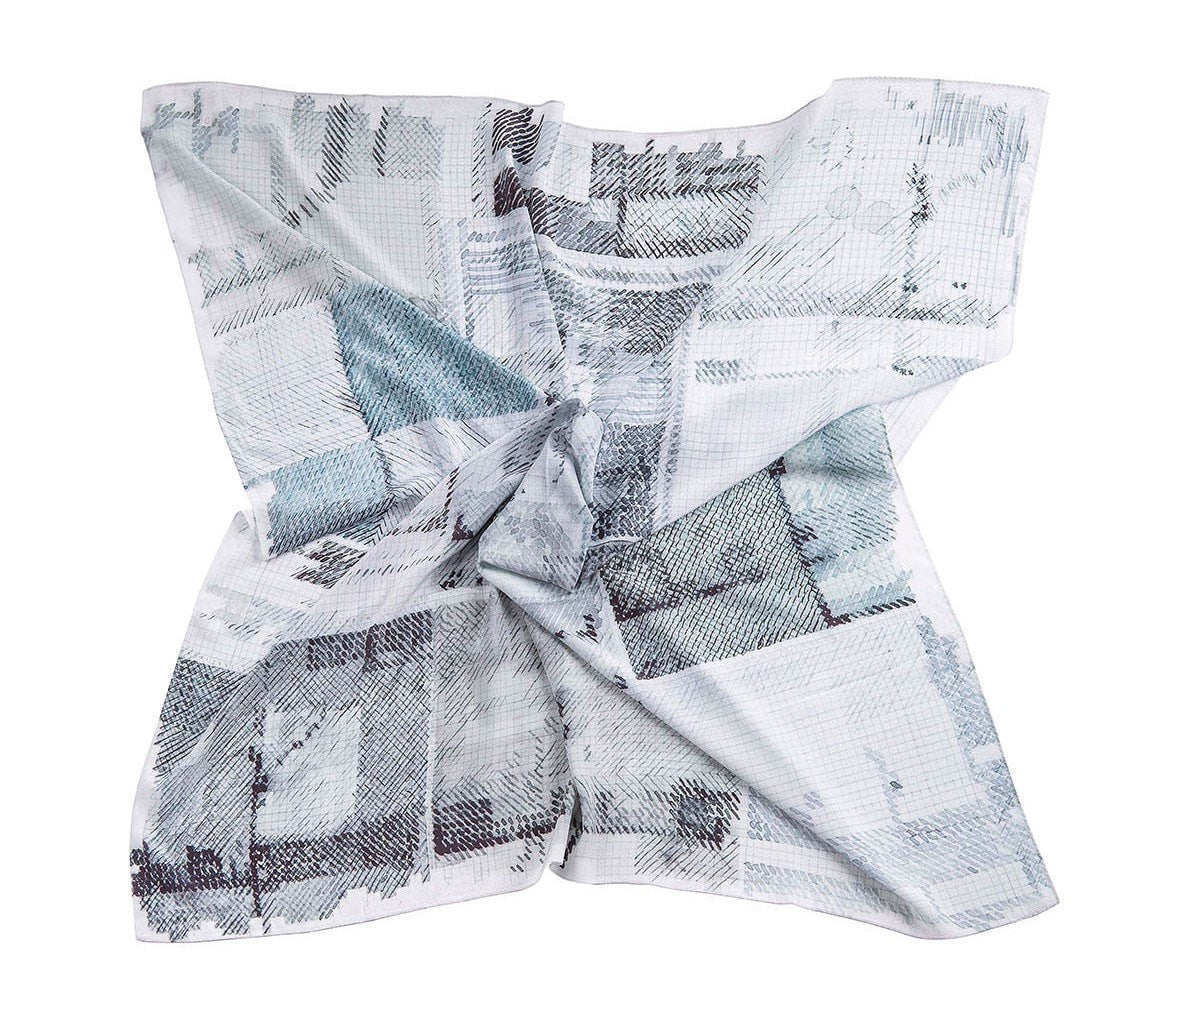 Hue Silk Scarf - Black Watercolor Print Scarves - artTECA